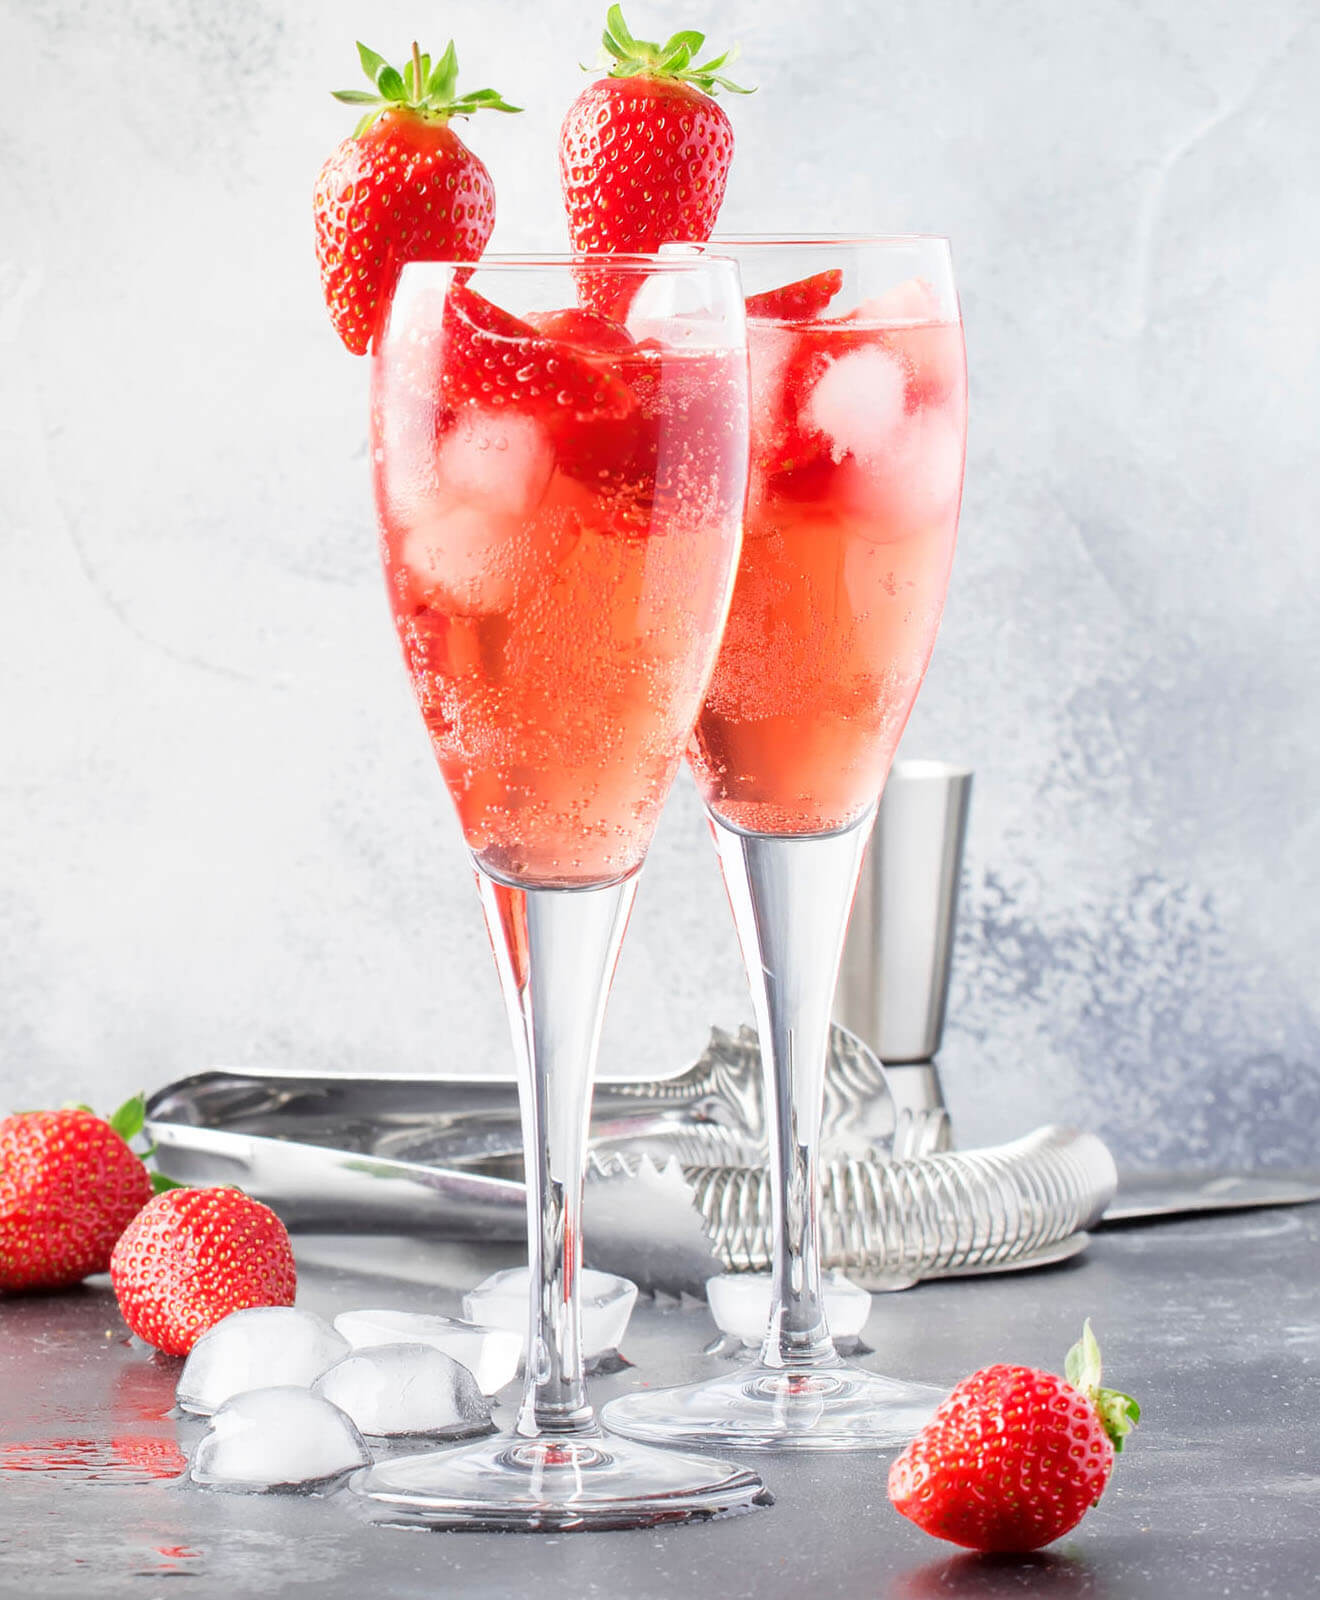 Fizzy Strawberry cocktails with strawberries